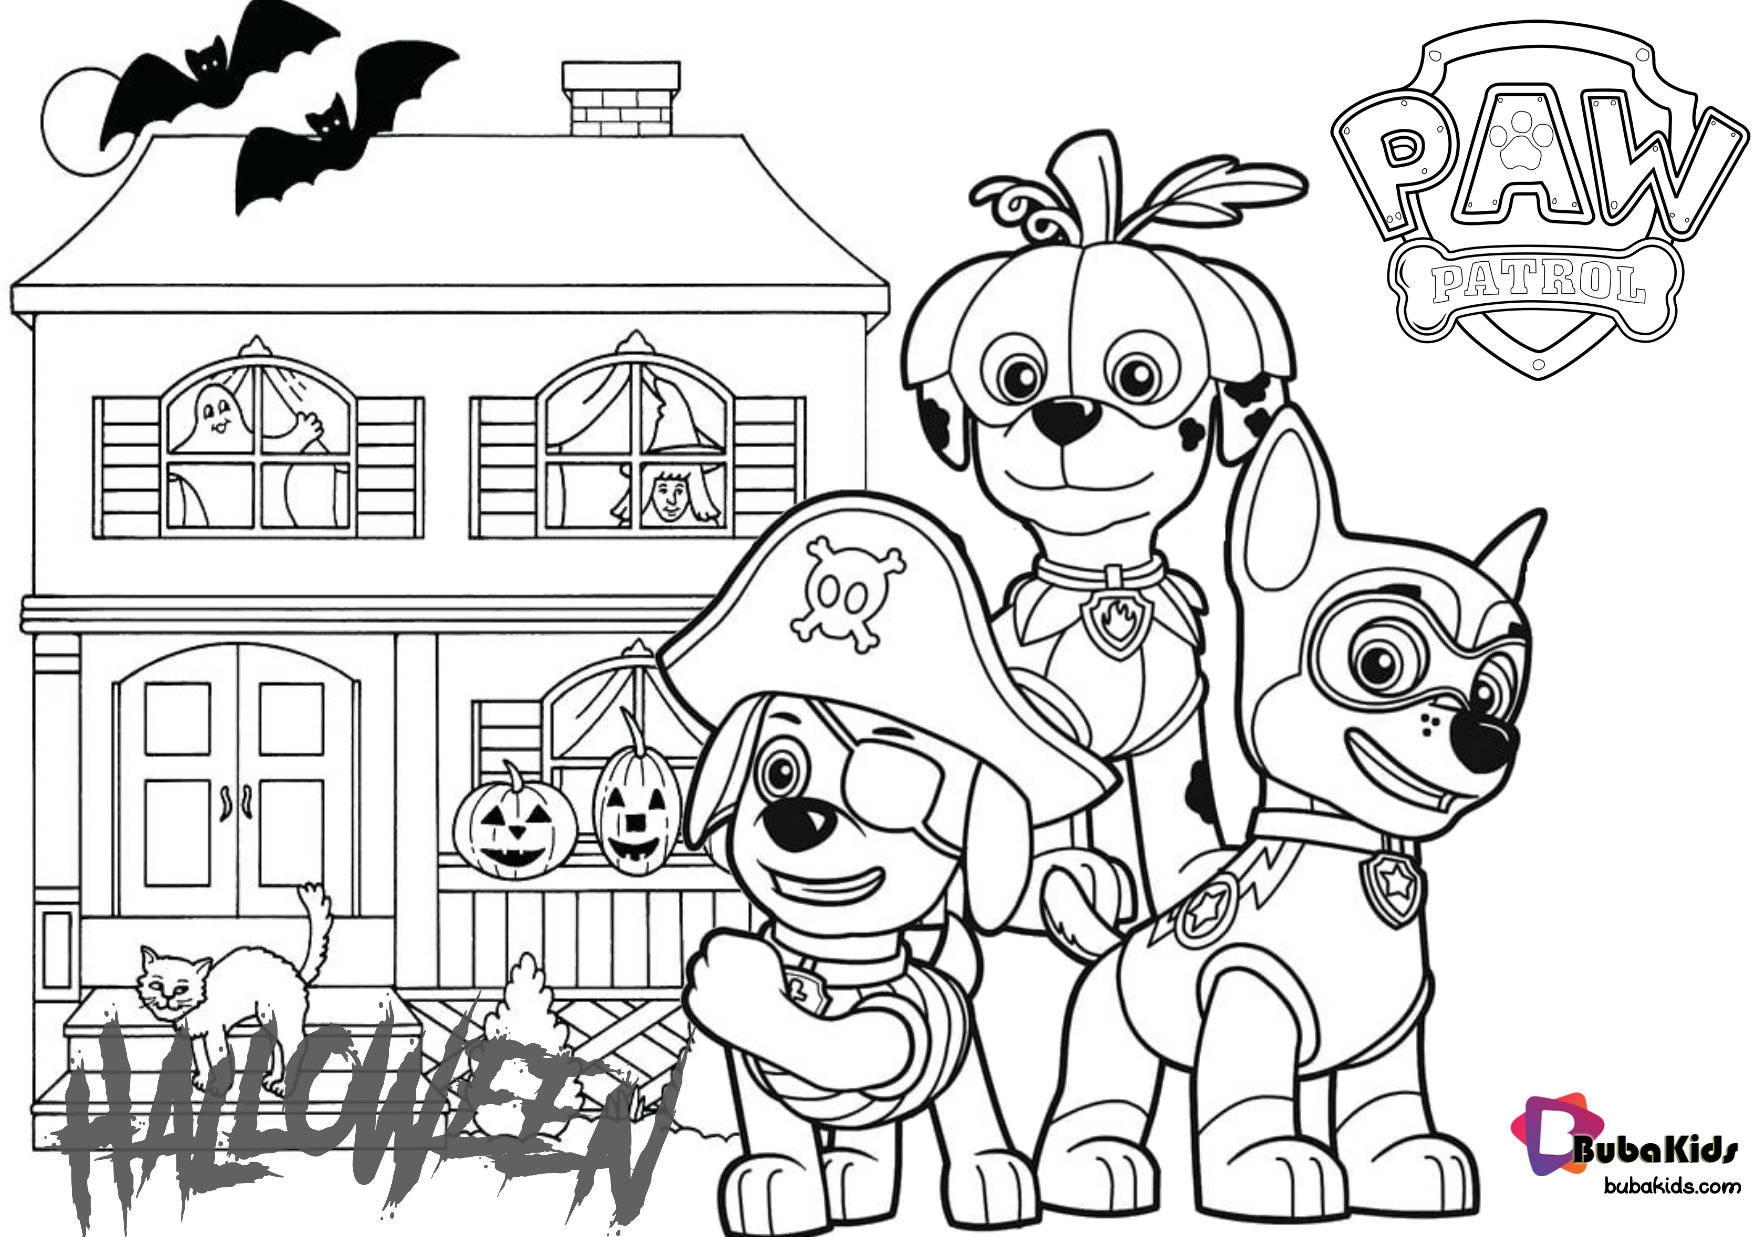 Paw Patrol Halloween Haunted House Coloring Pages Haunted House Paw Patrol Hauntedhouse P Halloween Haunted Houses Cartoon Coloring Pages Halloween Haunt